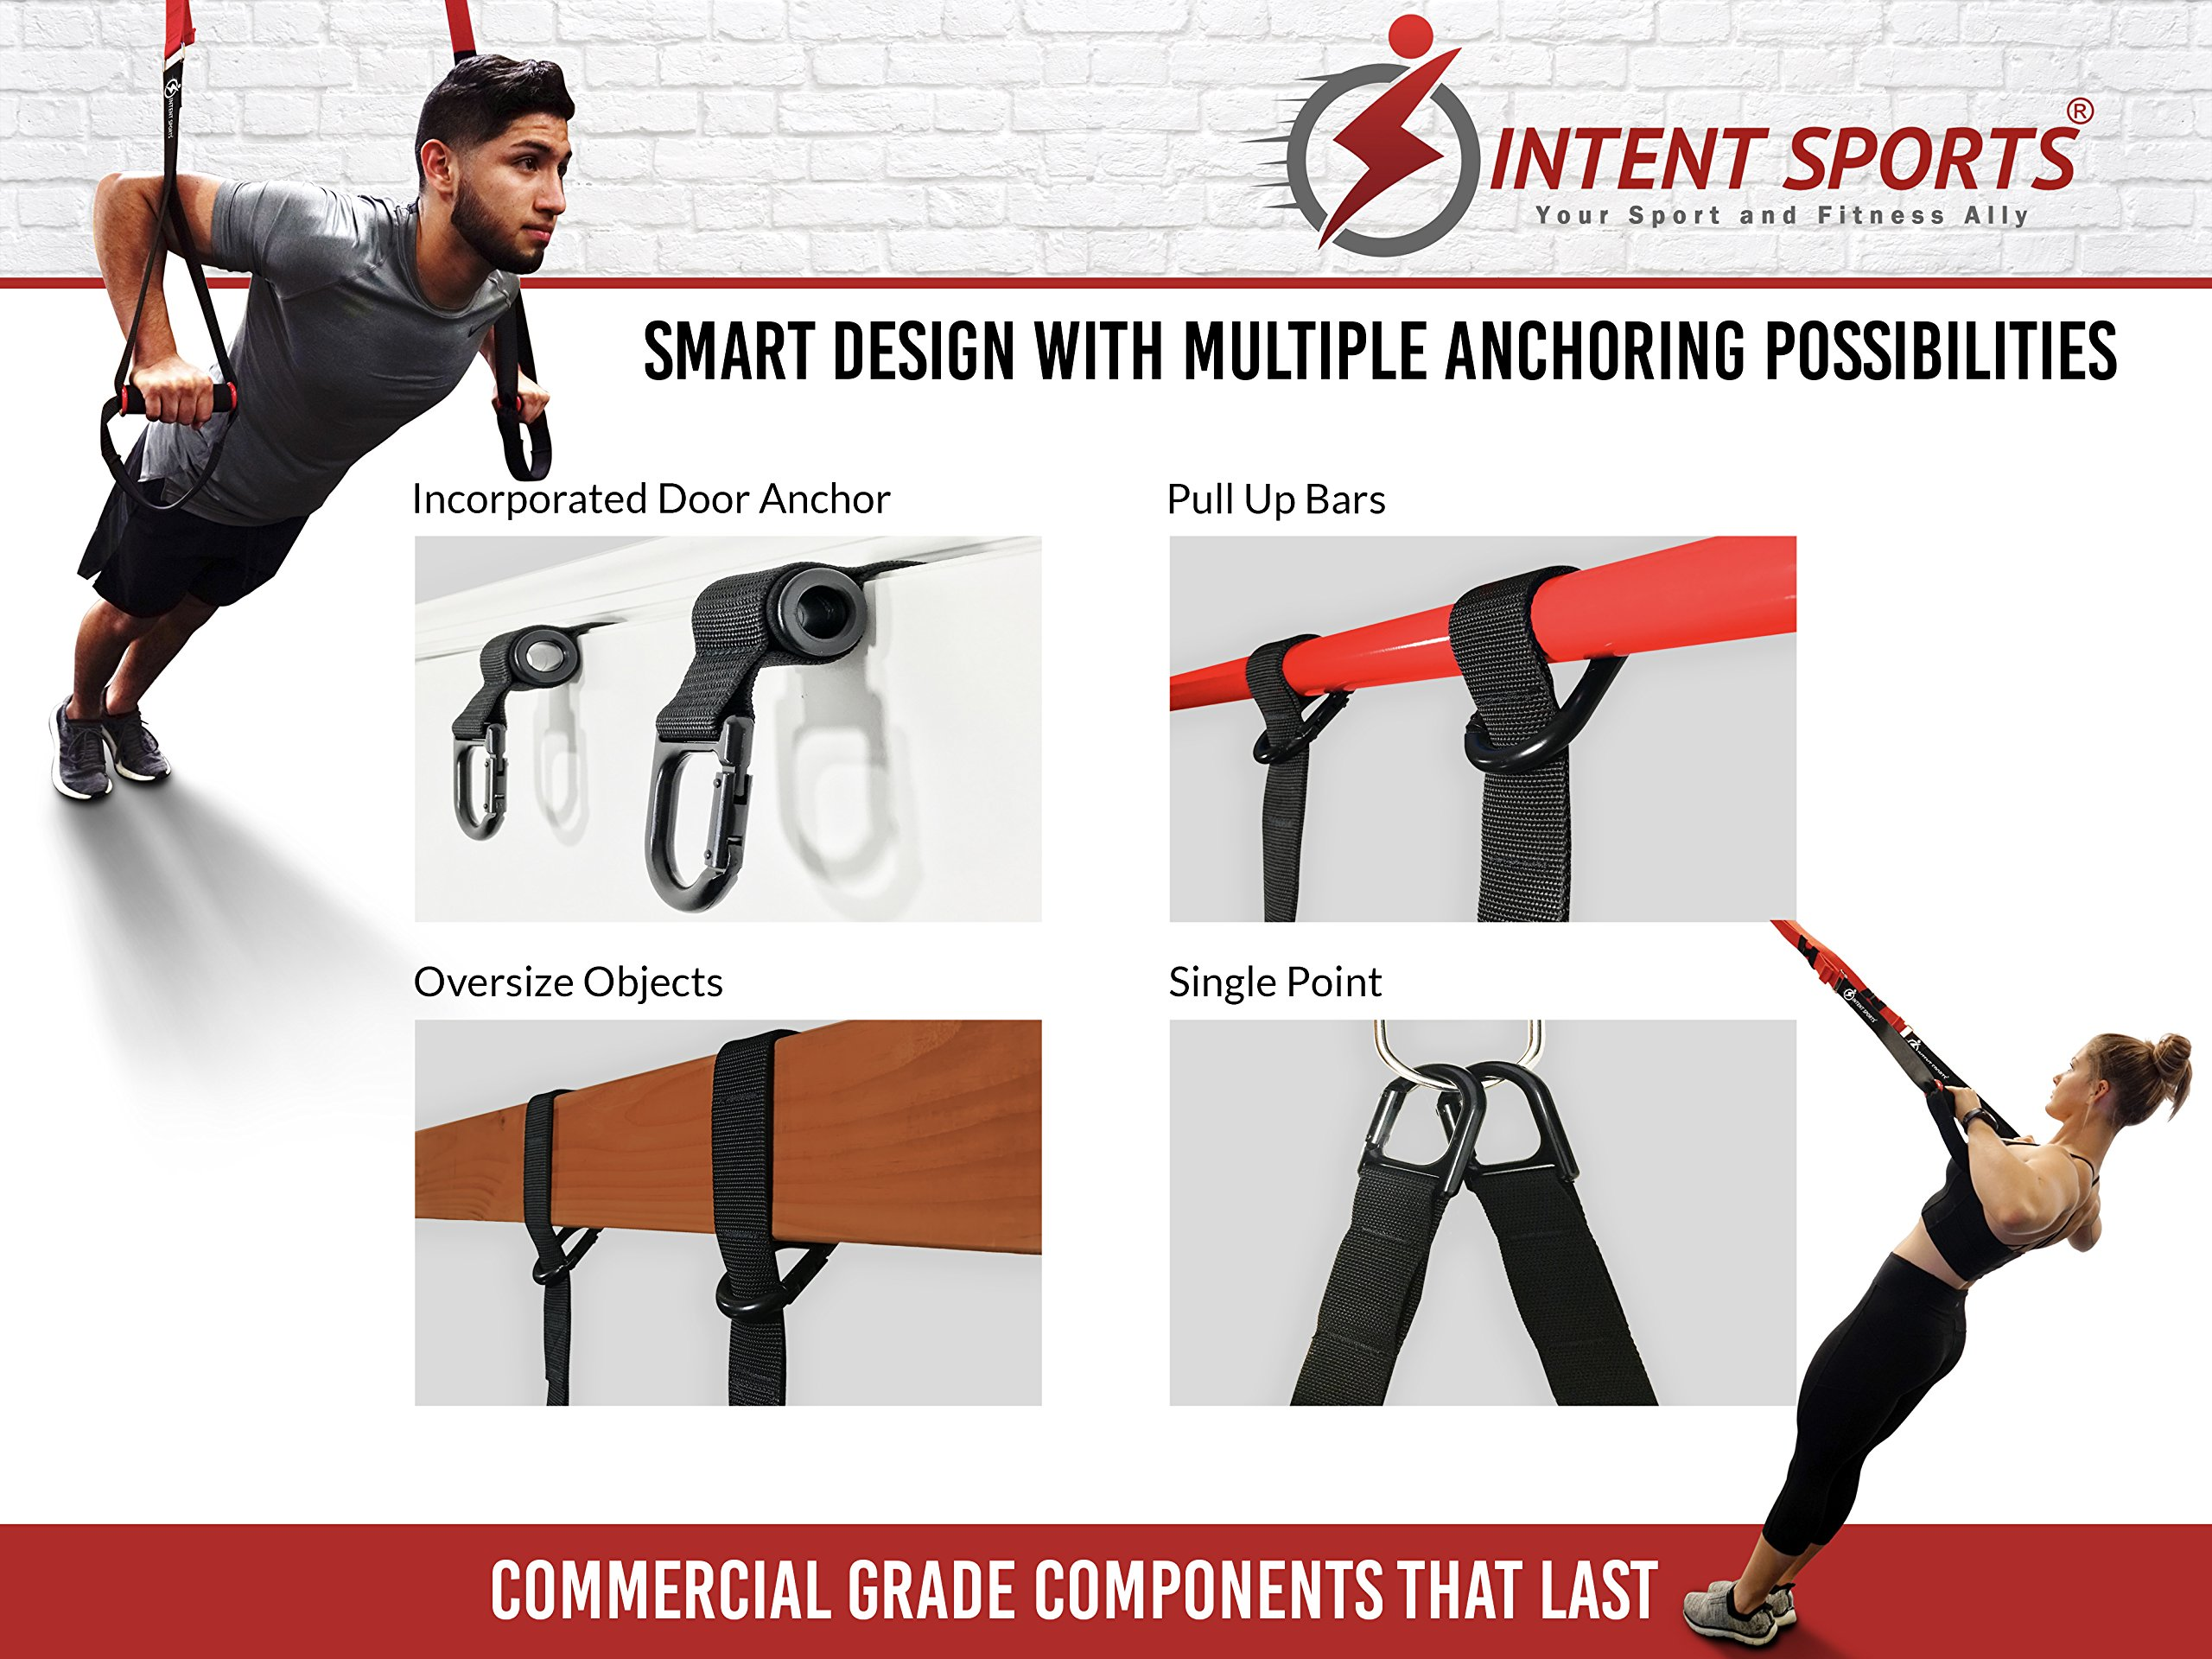 Bodyweight Fitness Resistance Trainer Kit with Pro Straps for Door, Pull up Bar or Anchor Point. Lean, Light, Extra Durable for Complete Body Workouts. E-Book ''12 Week Program'' (Patent Pending) by INTENT SPORTS (Image #3)